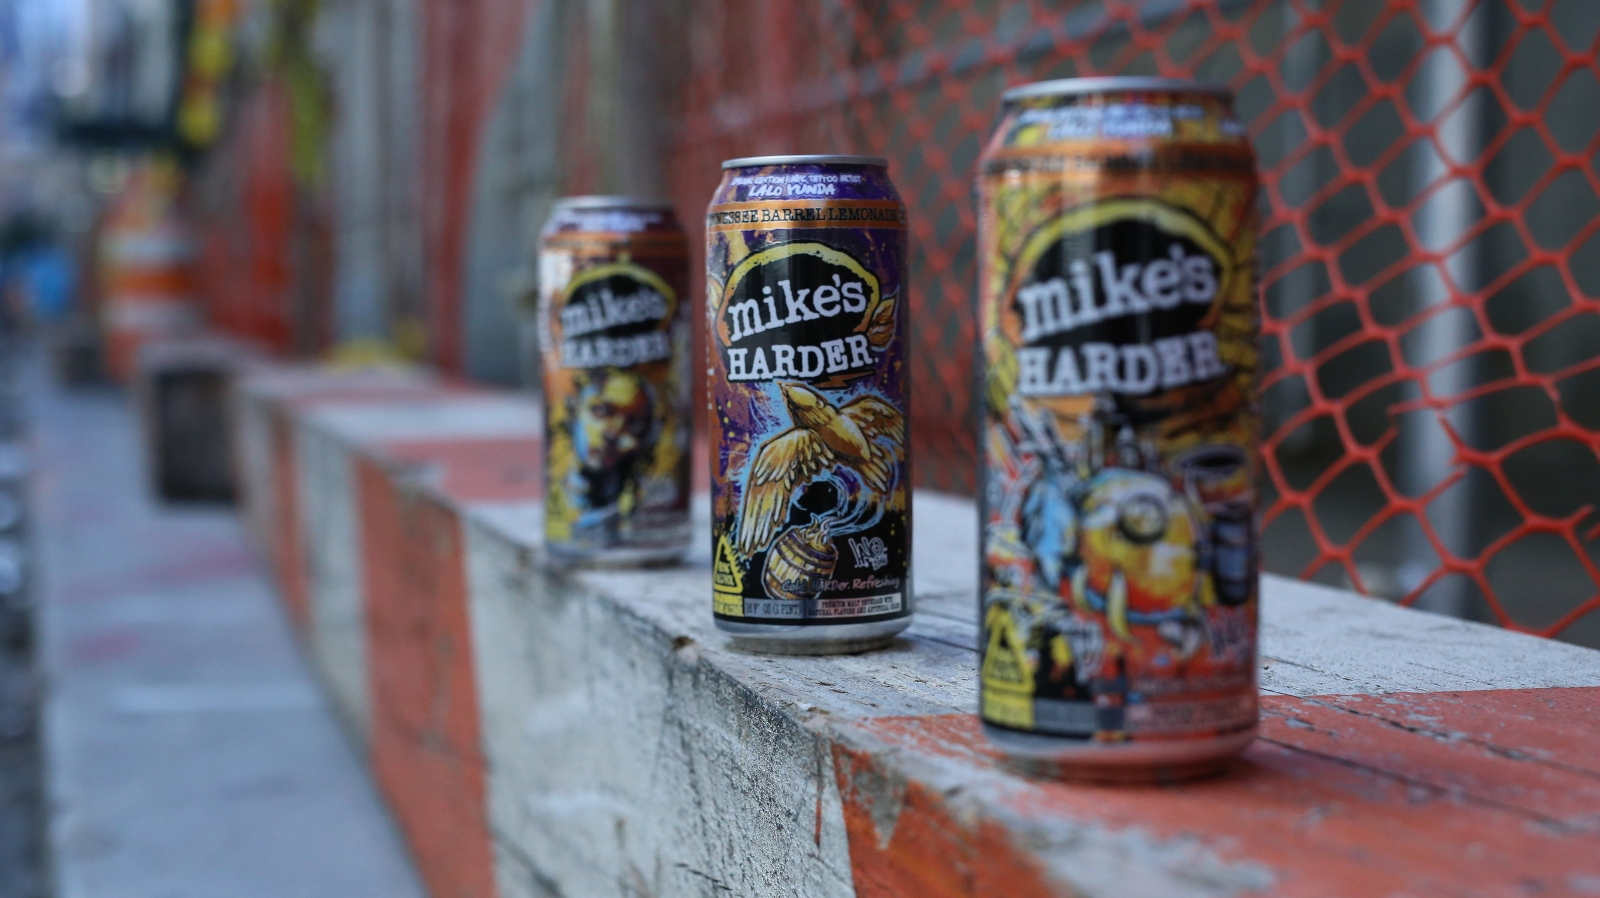 mike's HARDER Introduces Ink-Inspired Collectible Cans